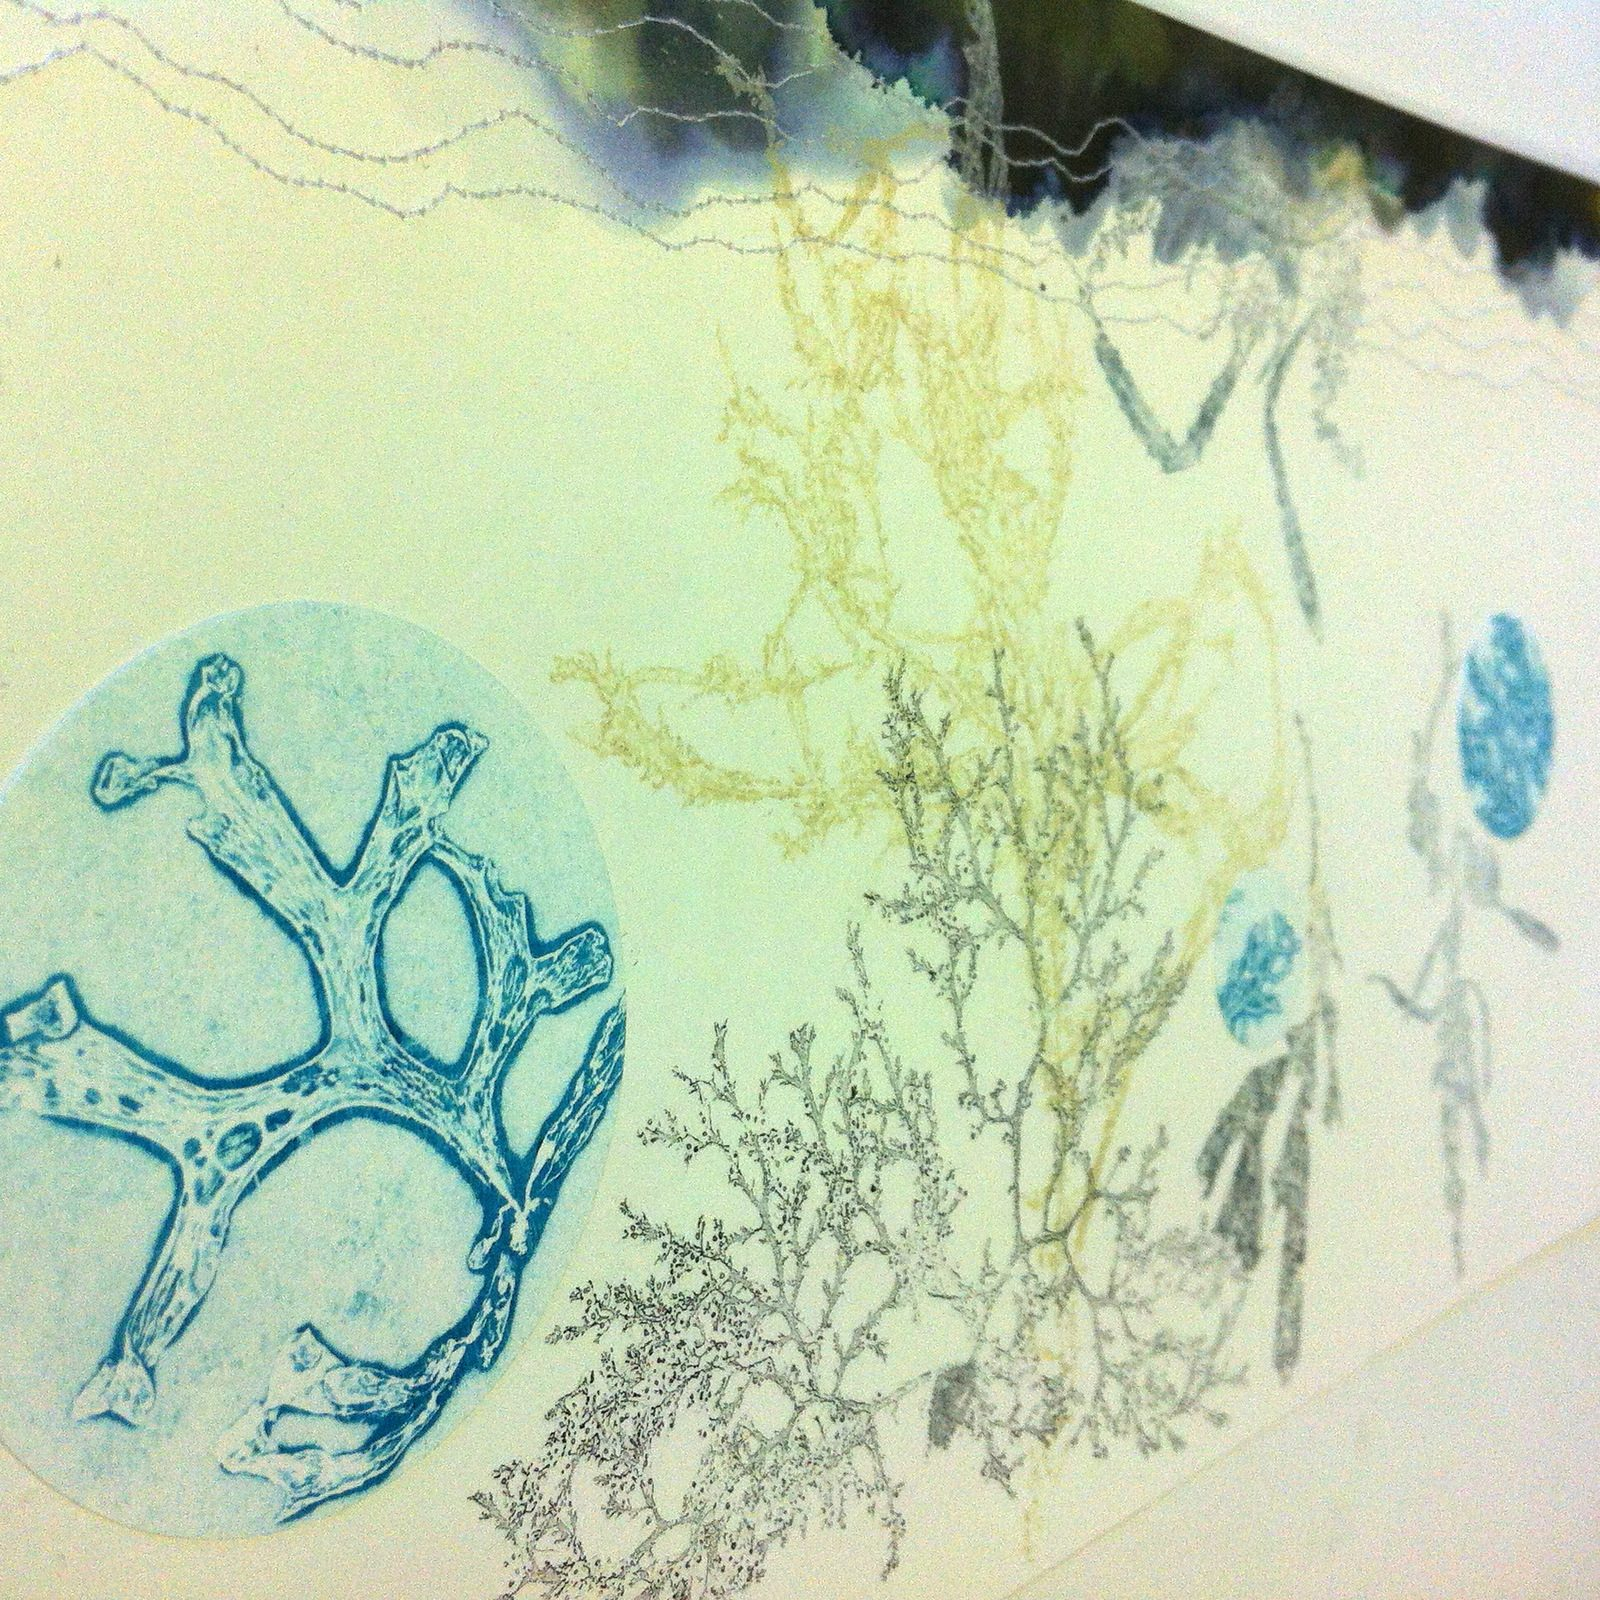 detail - monotype with seaweed, stitching, ink, on paper